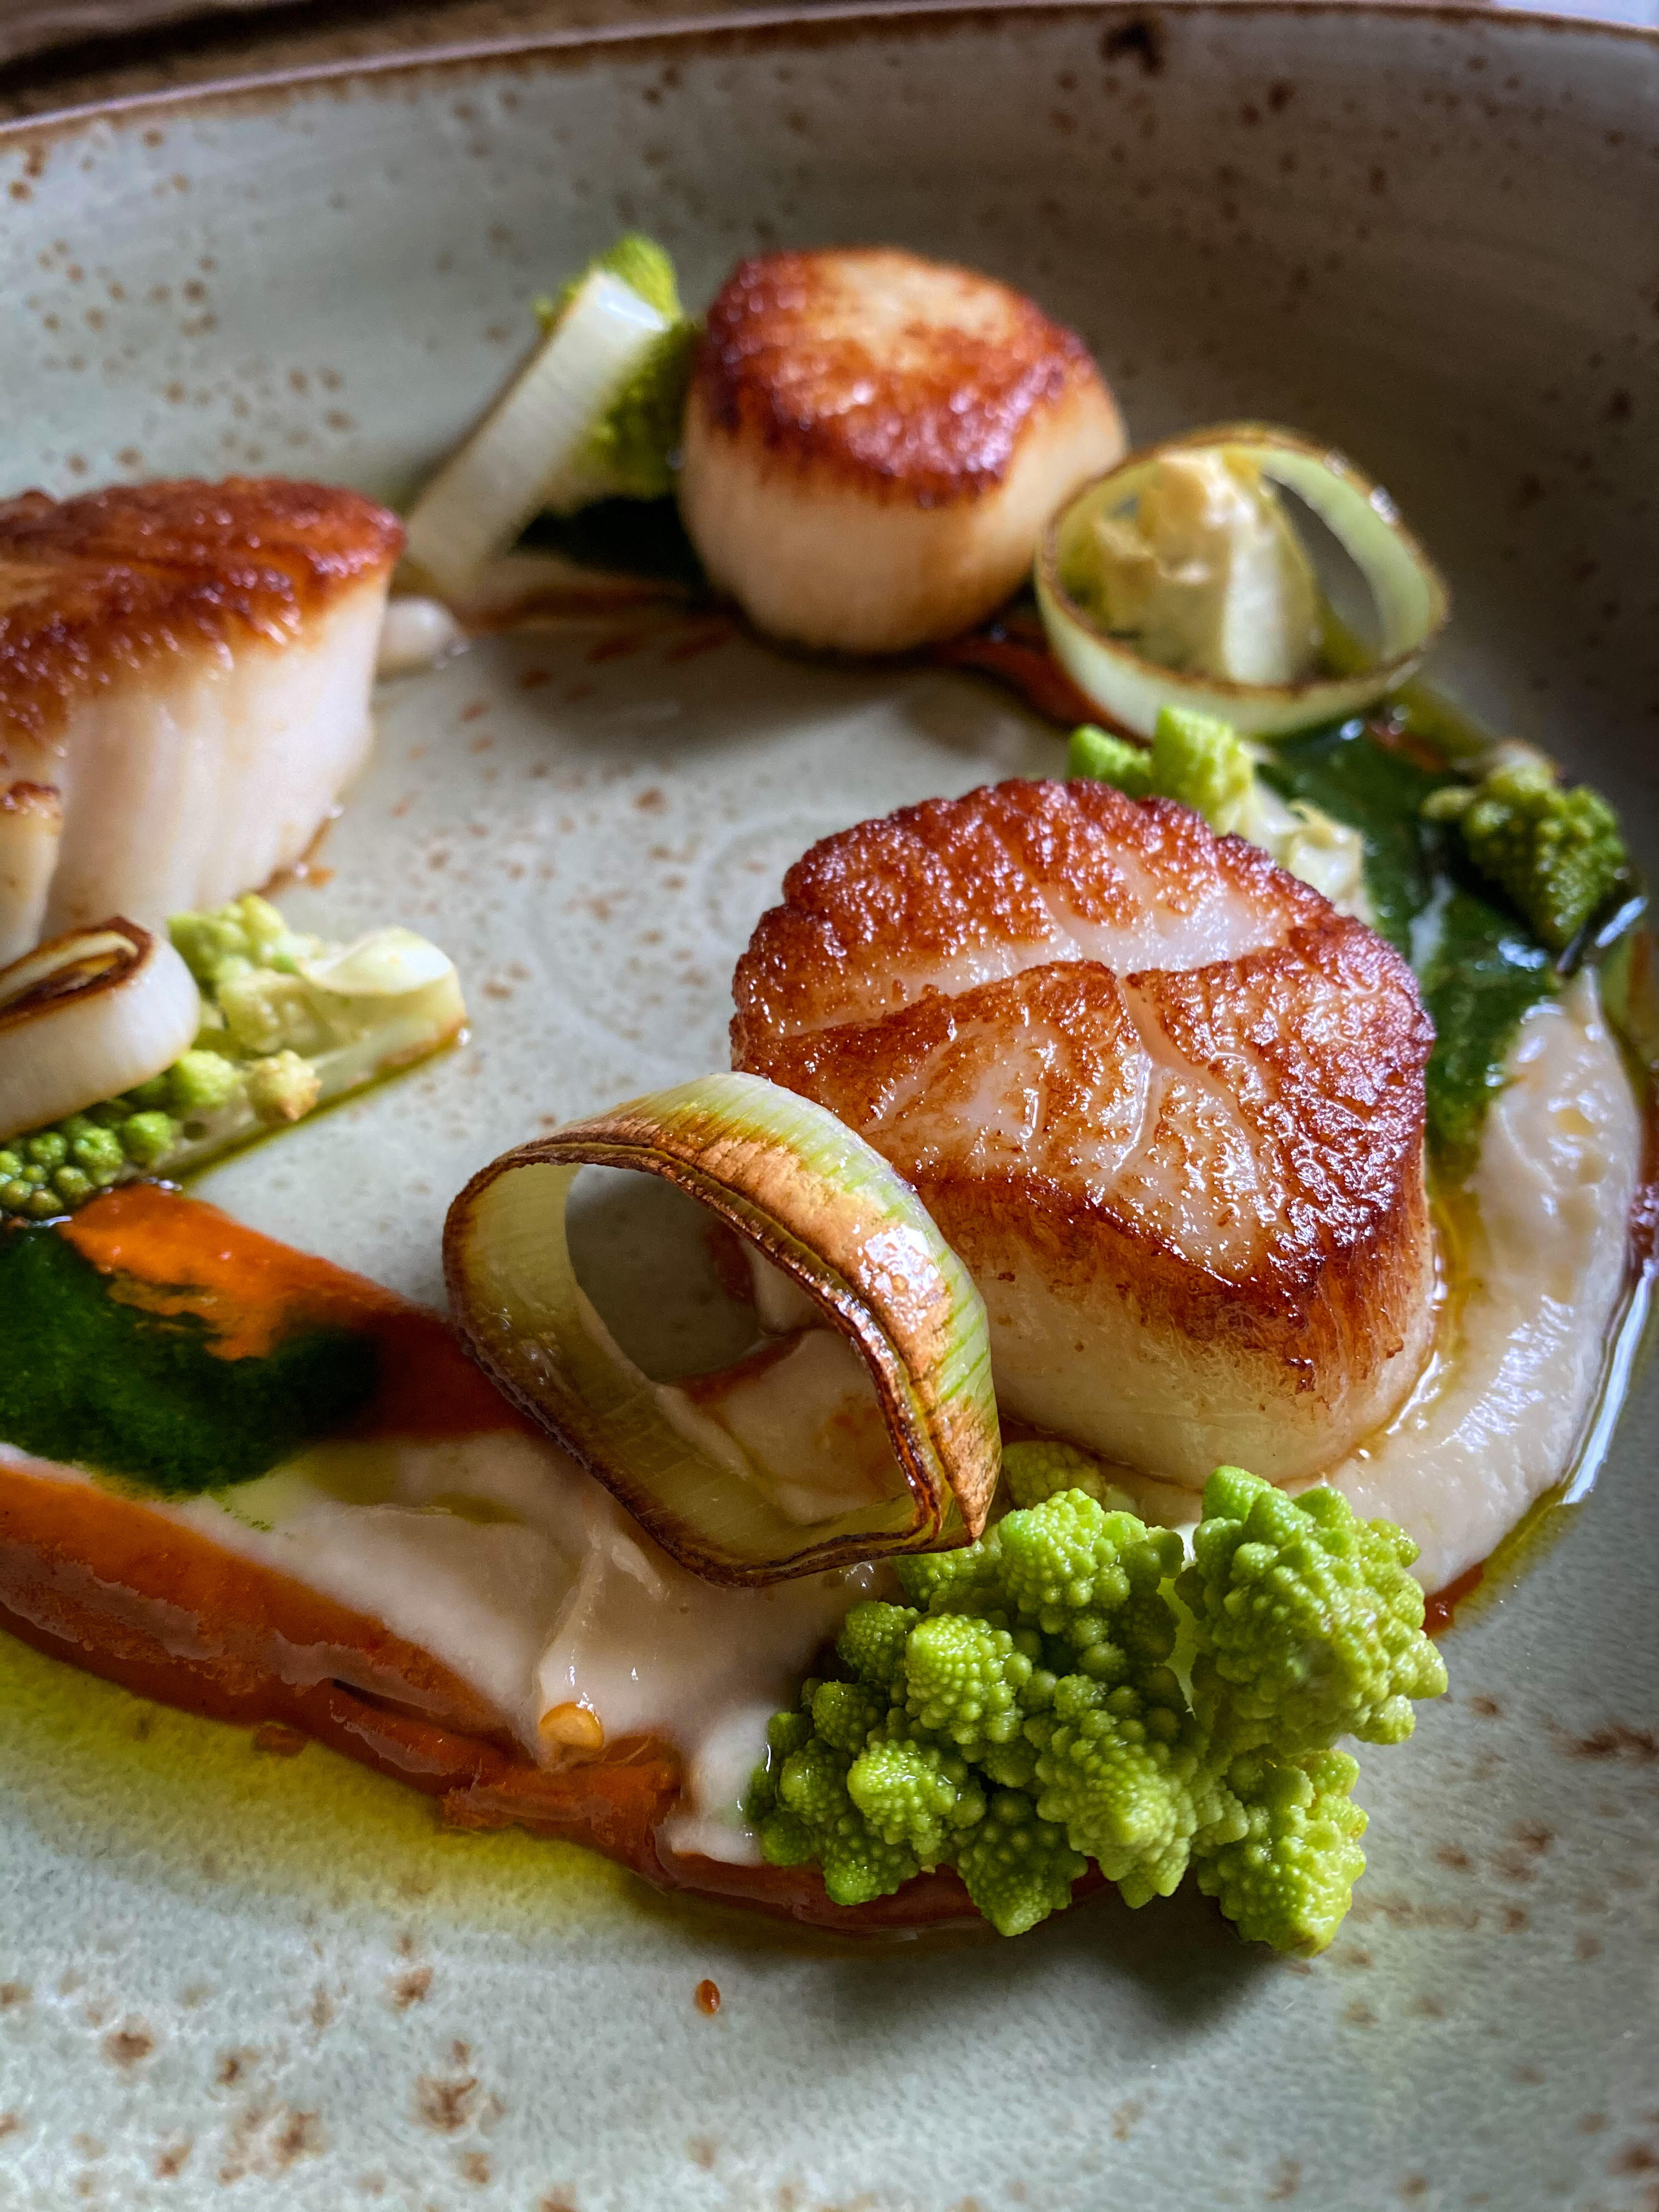 Scallops with Walla Walla onion purée and charred leeks on a white dish